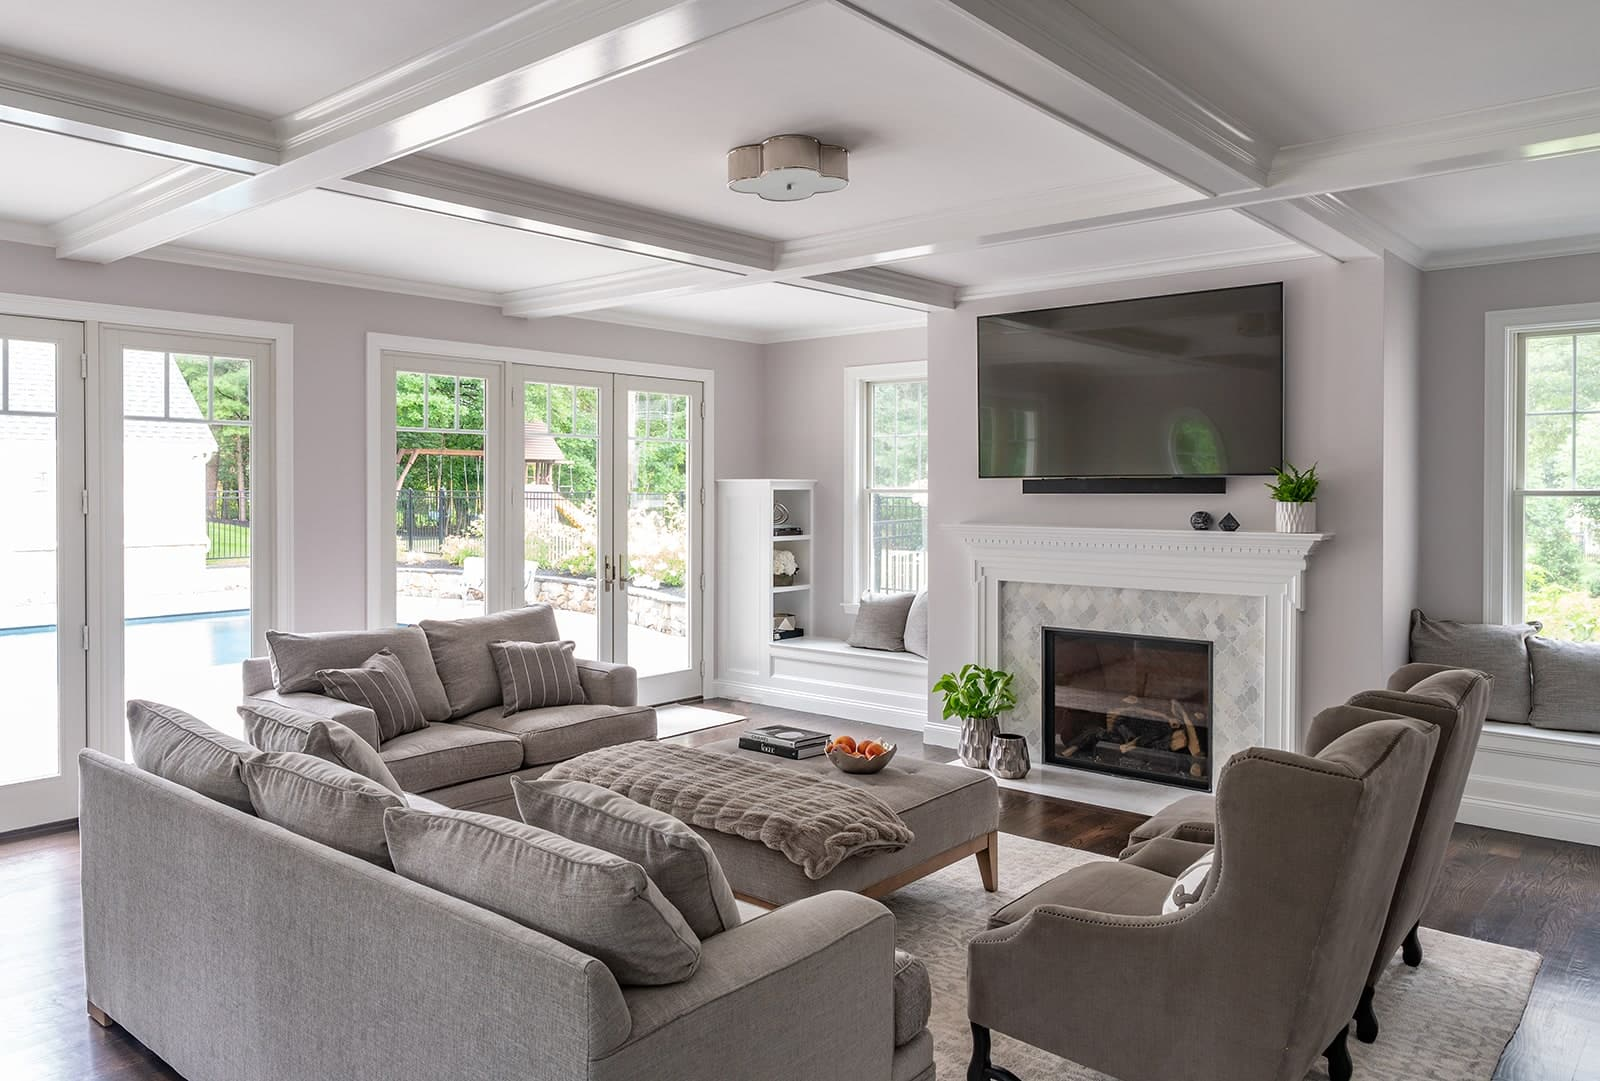 North Shore Tranquility Interiors Middleton MA a Living Room